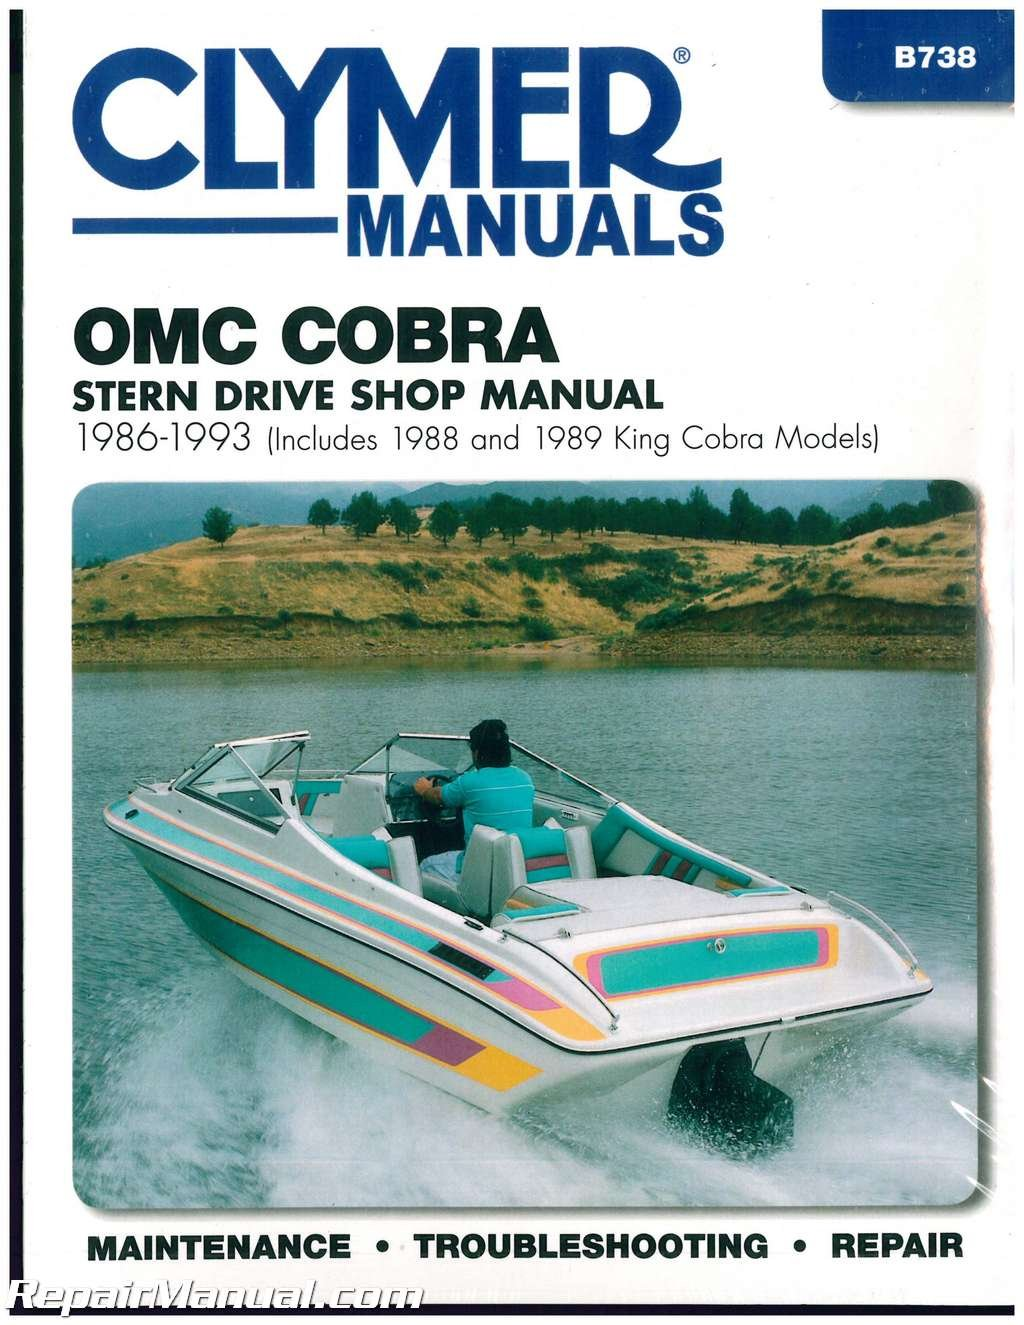 B738 Clymer Omc Cobra 1986 1993 Stern Drive Boat Engine Repair 89 4 3 Wiring Diagram Manual Manufacturer Books